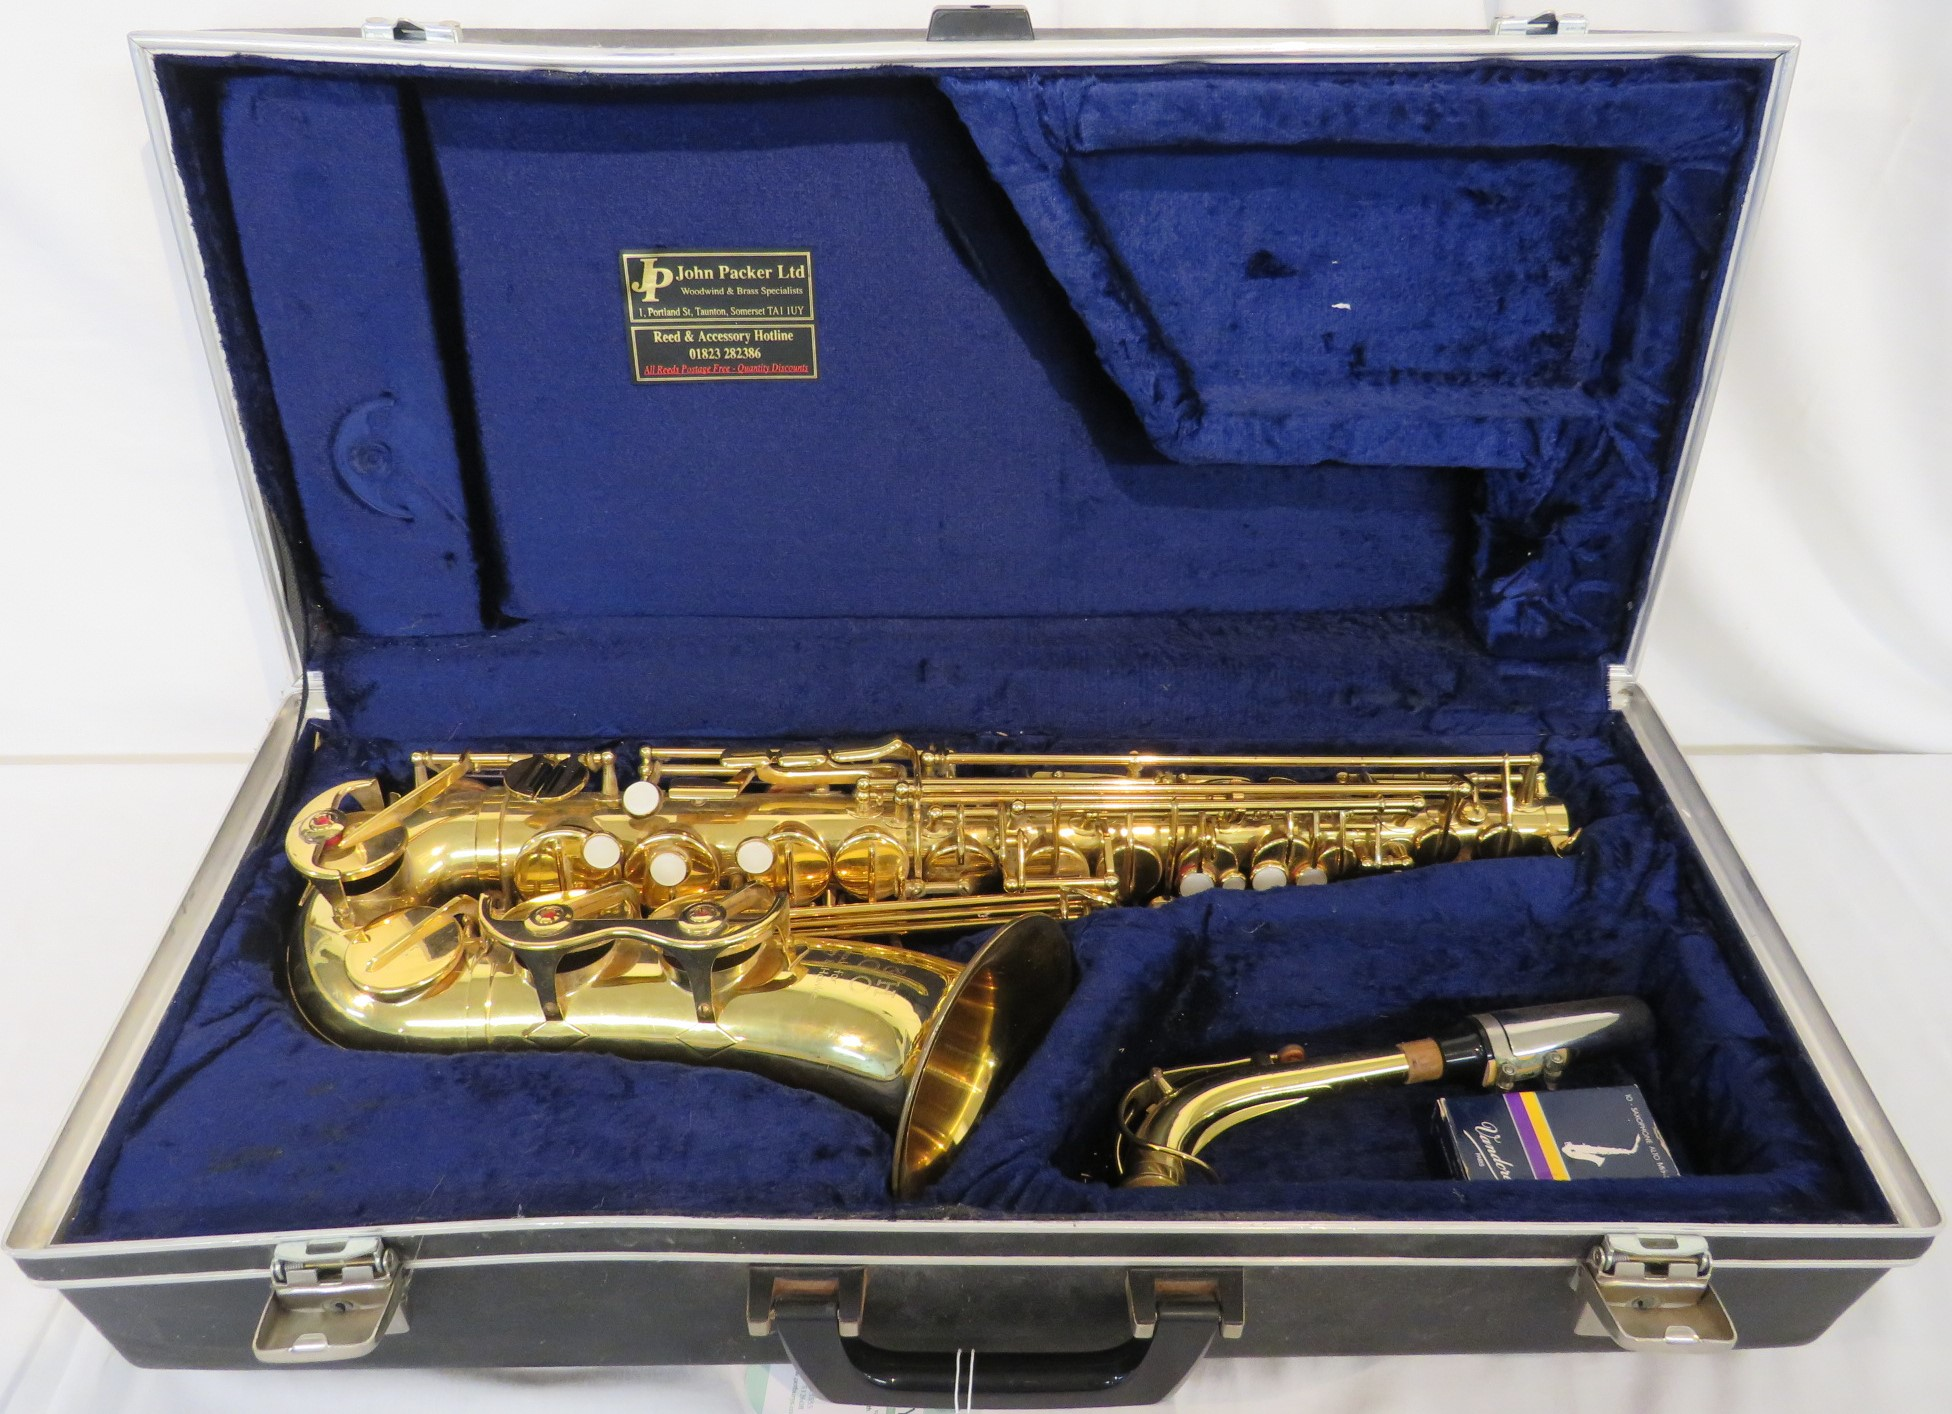 Lot 180 - B & H 400 for Boosey & Hawkes Alto saxophone in hard carry case